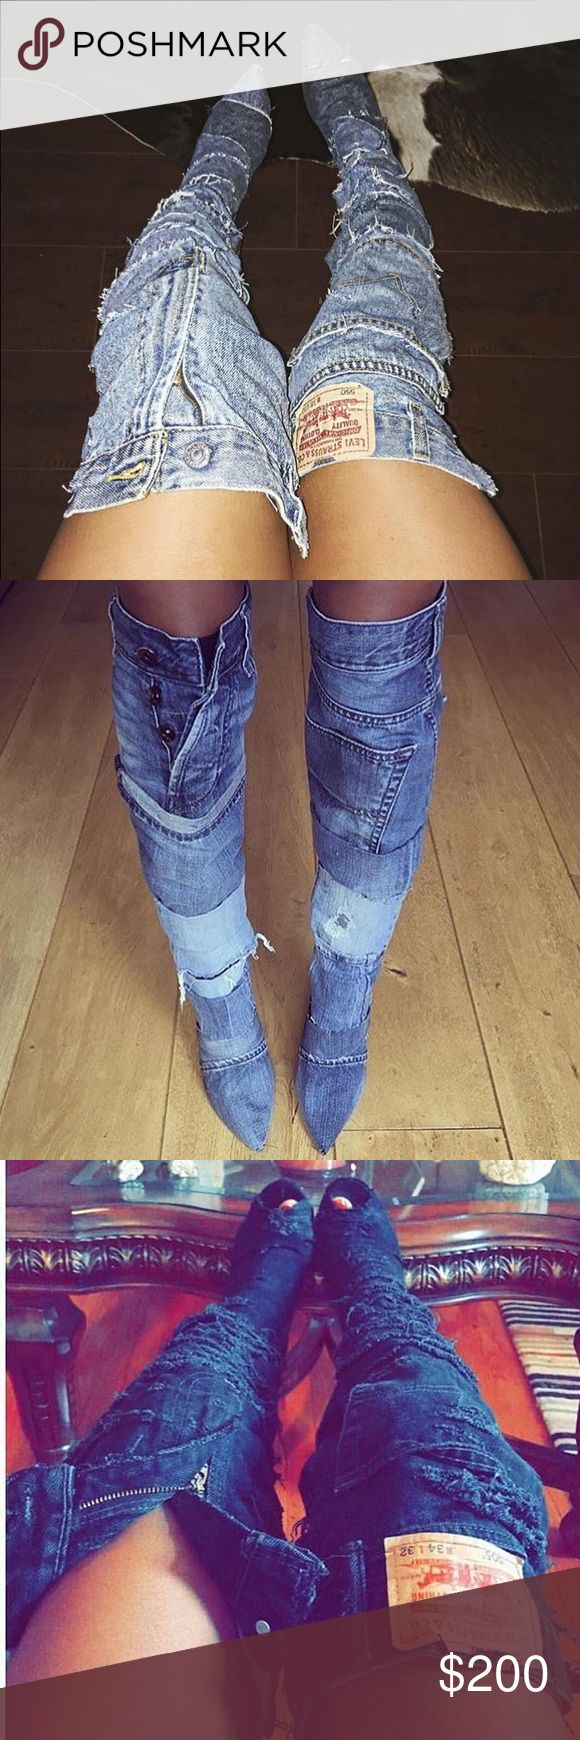 Denim boots (made to order!!!) thigh highs Any size available, ANY WASH & Great quality! Just comment style, wash color & size! Short or long style available! Tall or short heels available Rihanna Shoes Over the Knee Boots